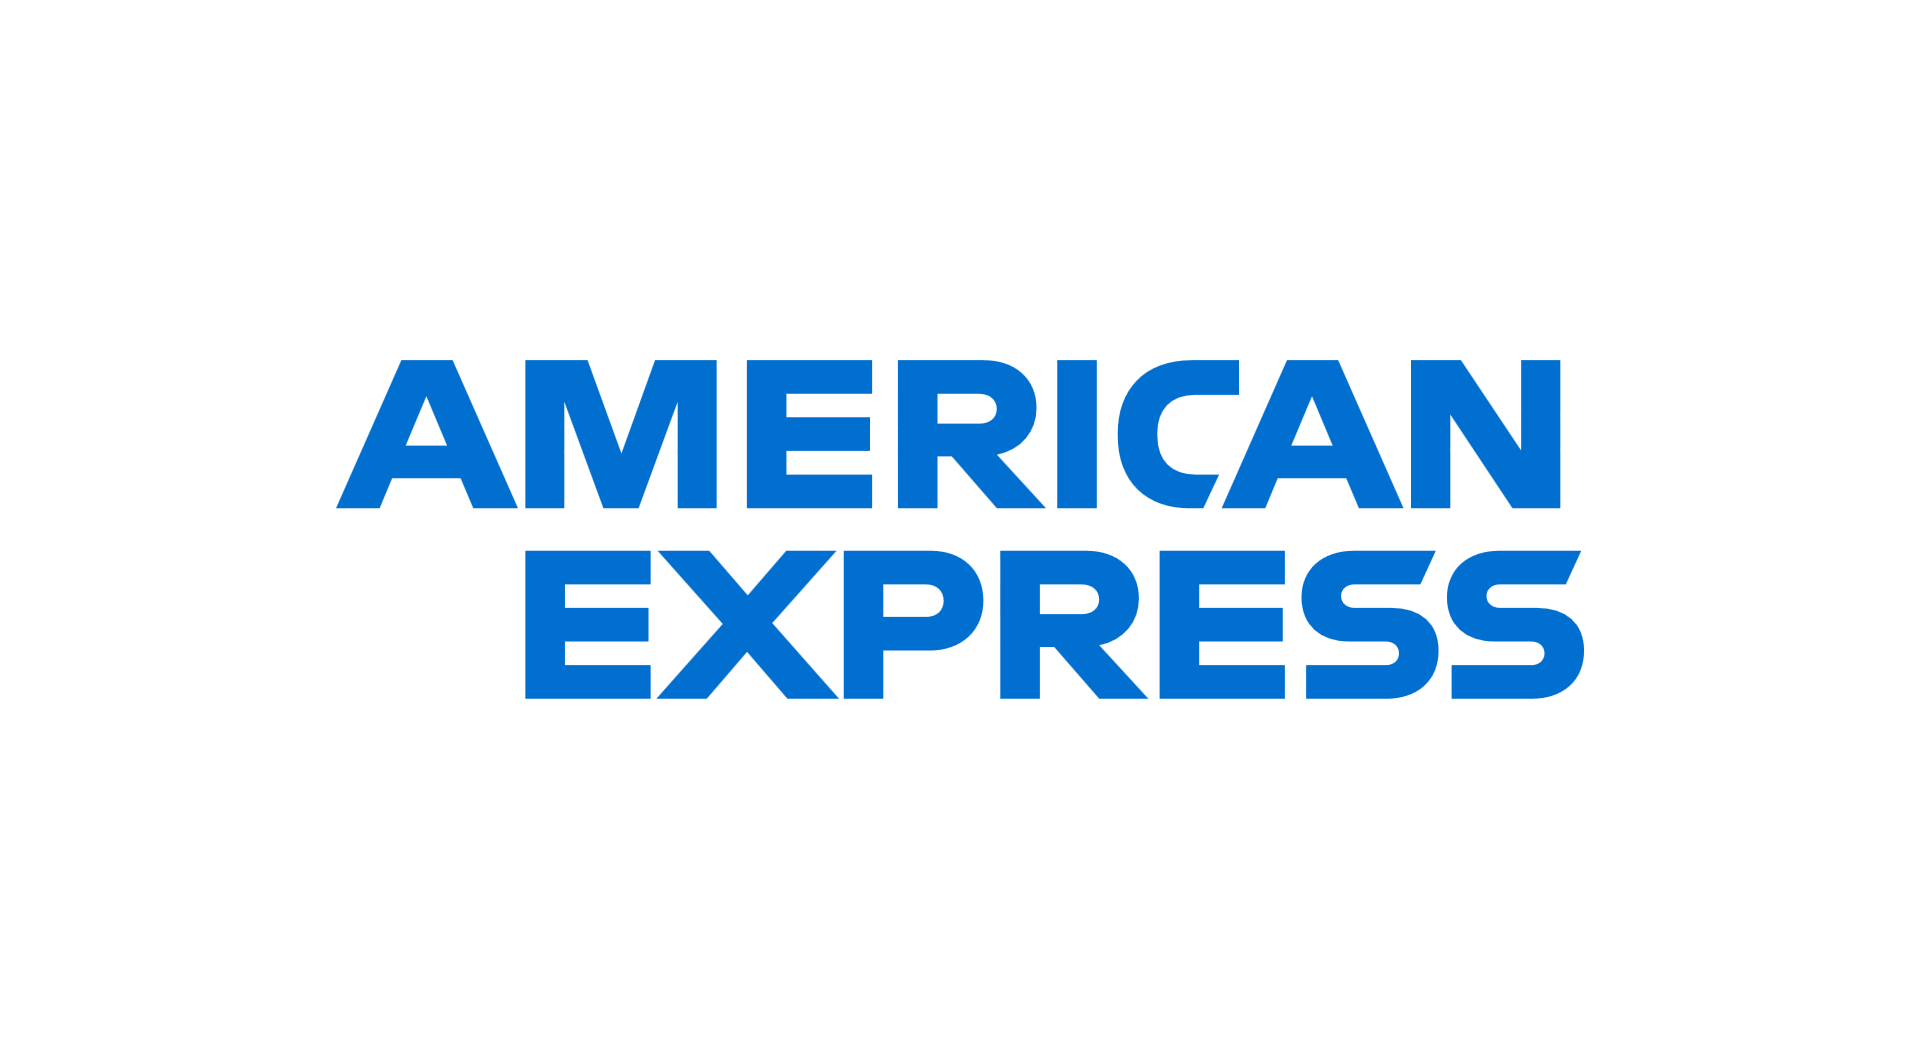 https://rocsavings.com/wp-content/uploads/2019/07/American-Express-Logotype-Stacked.png